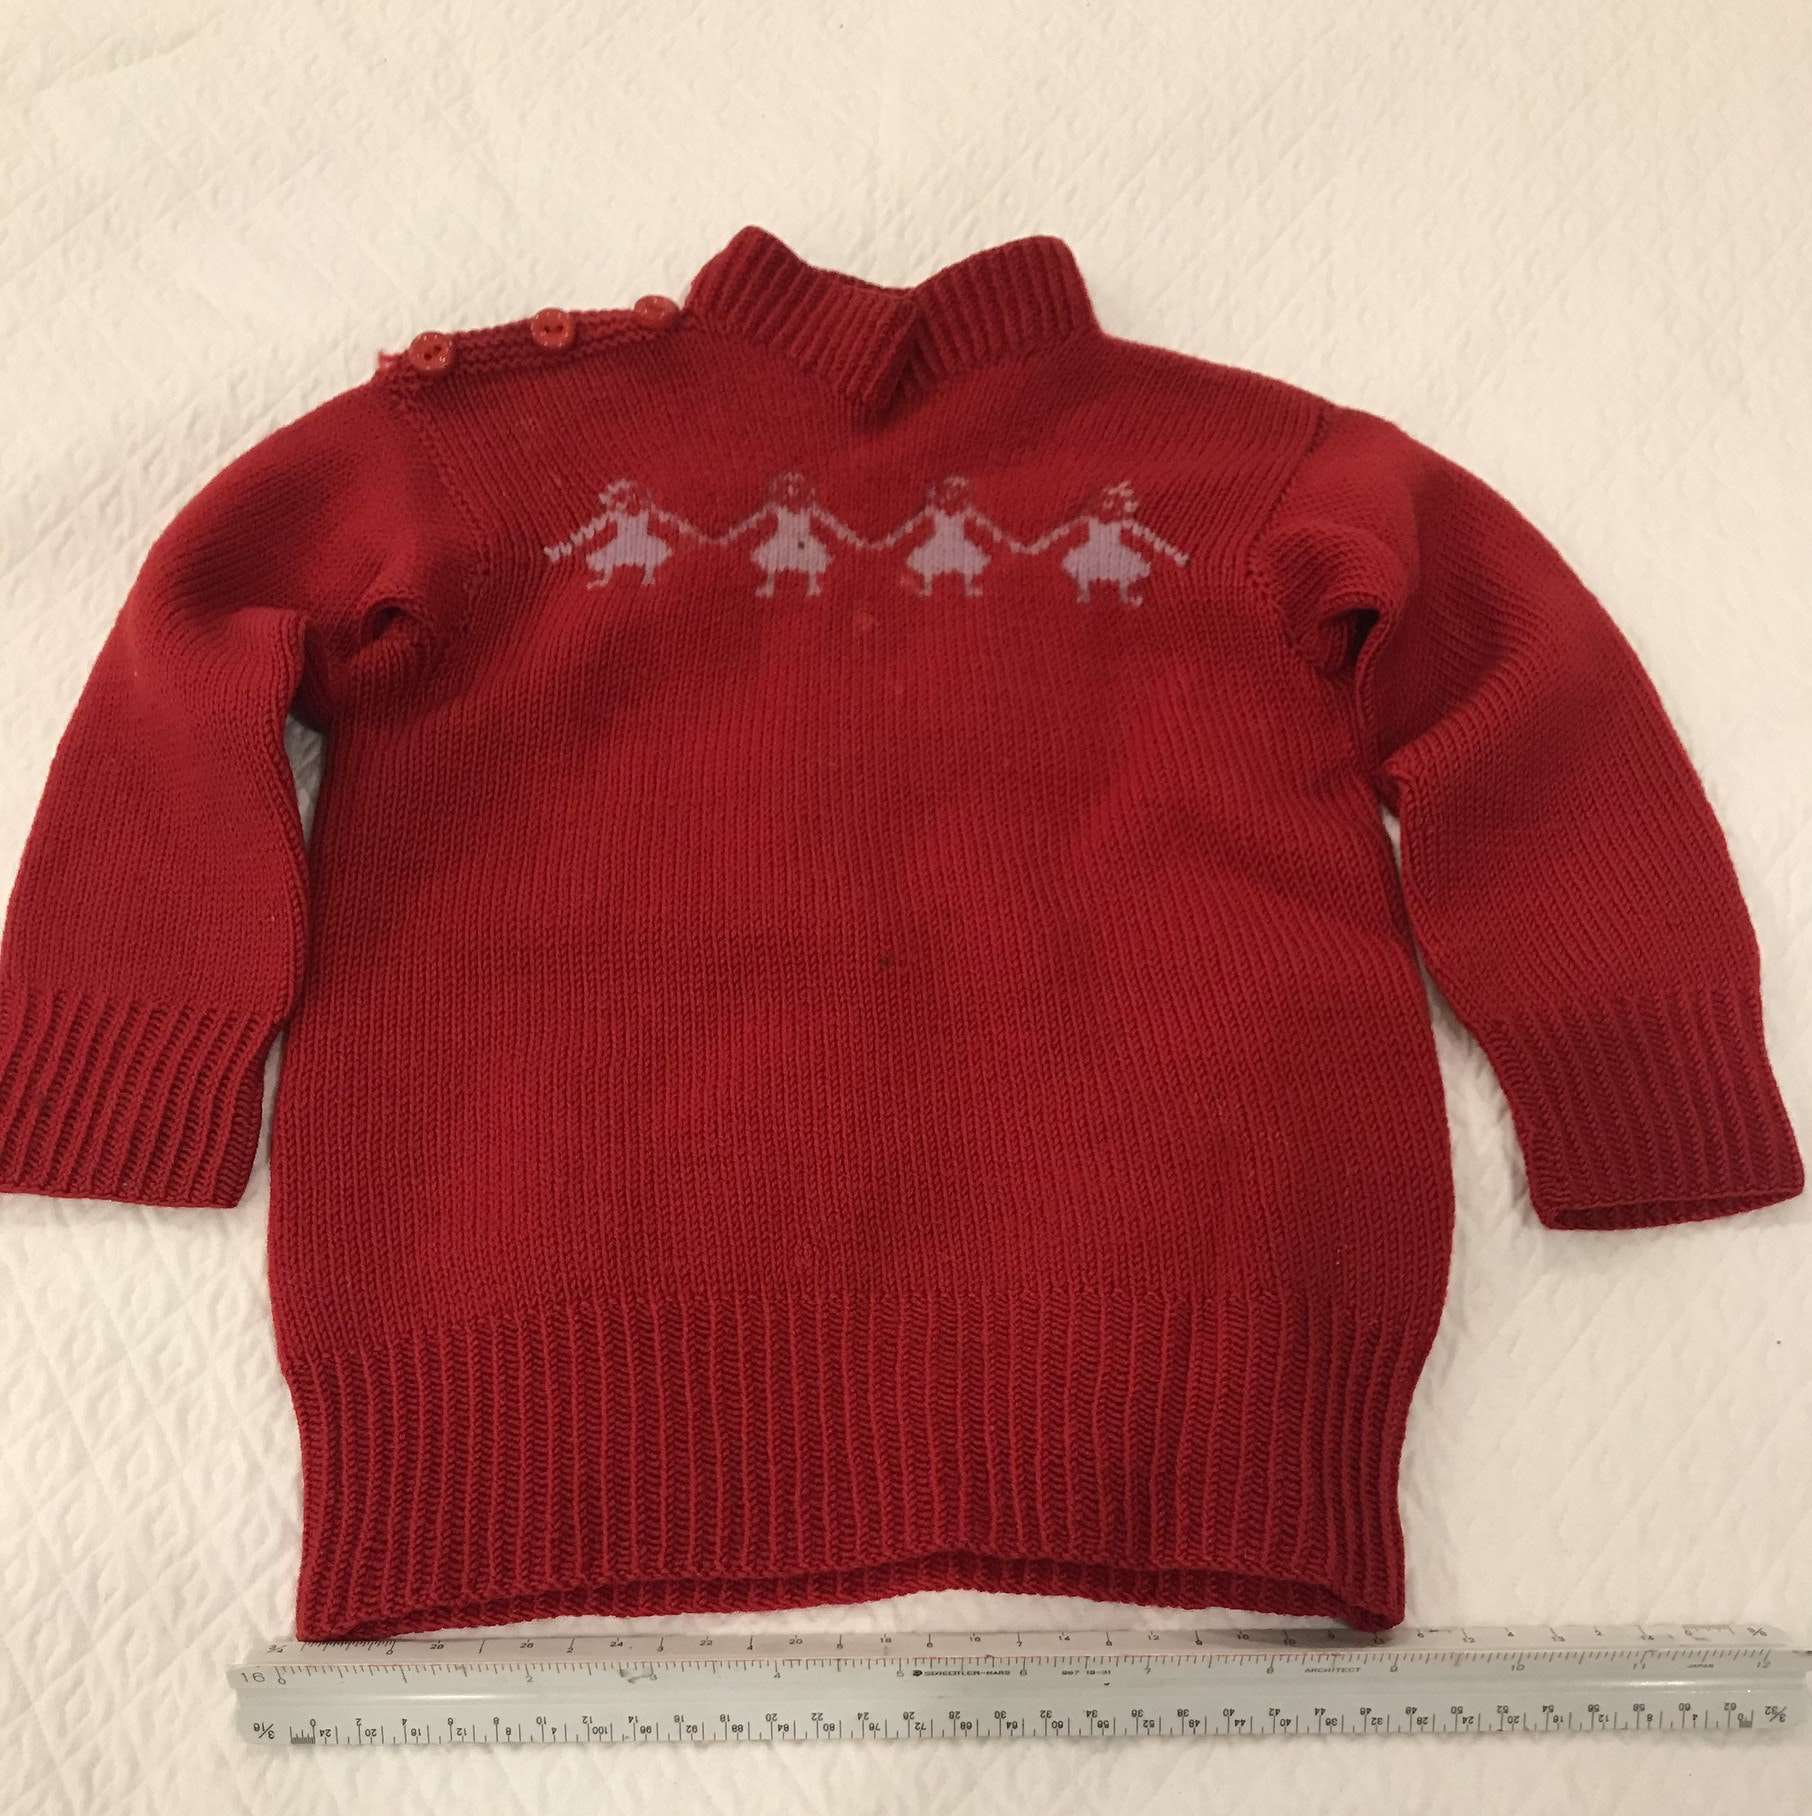 Toddler sized red knit sweater with 4 girls holding hands